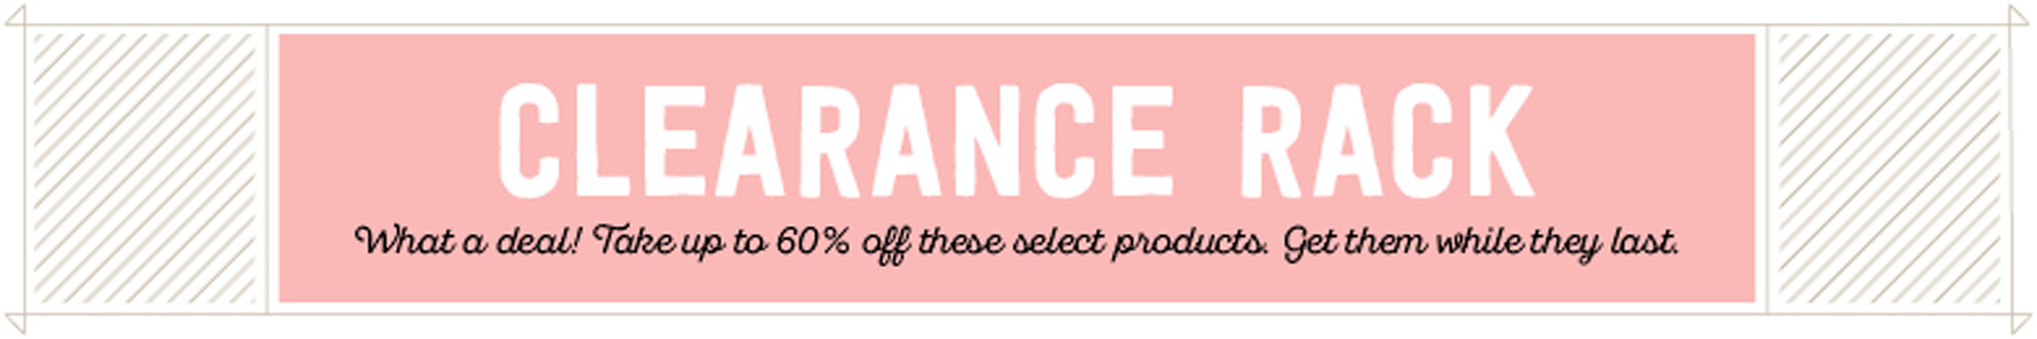 2017 08 15 Stampin'Up! Promotion – Fin de série : Clearance rack 2